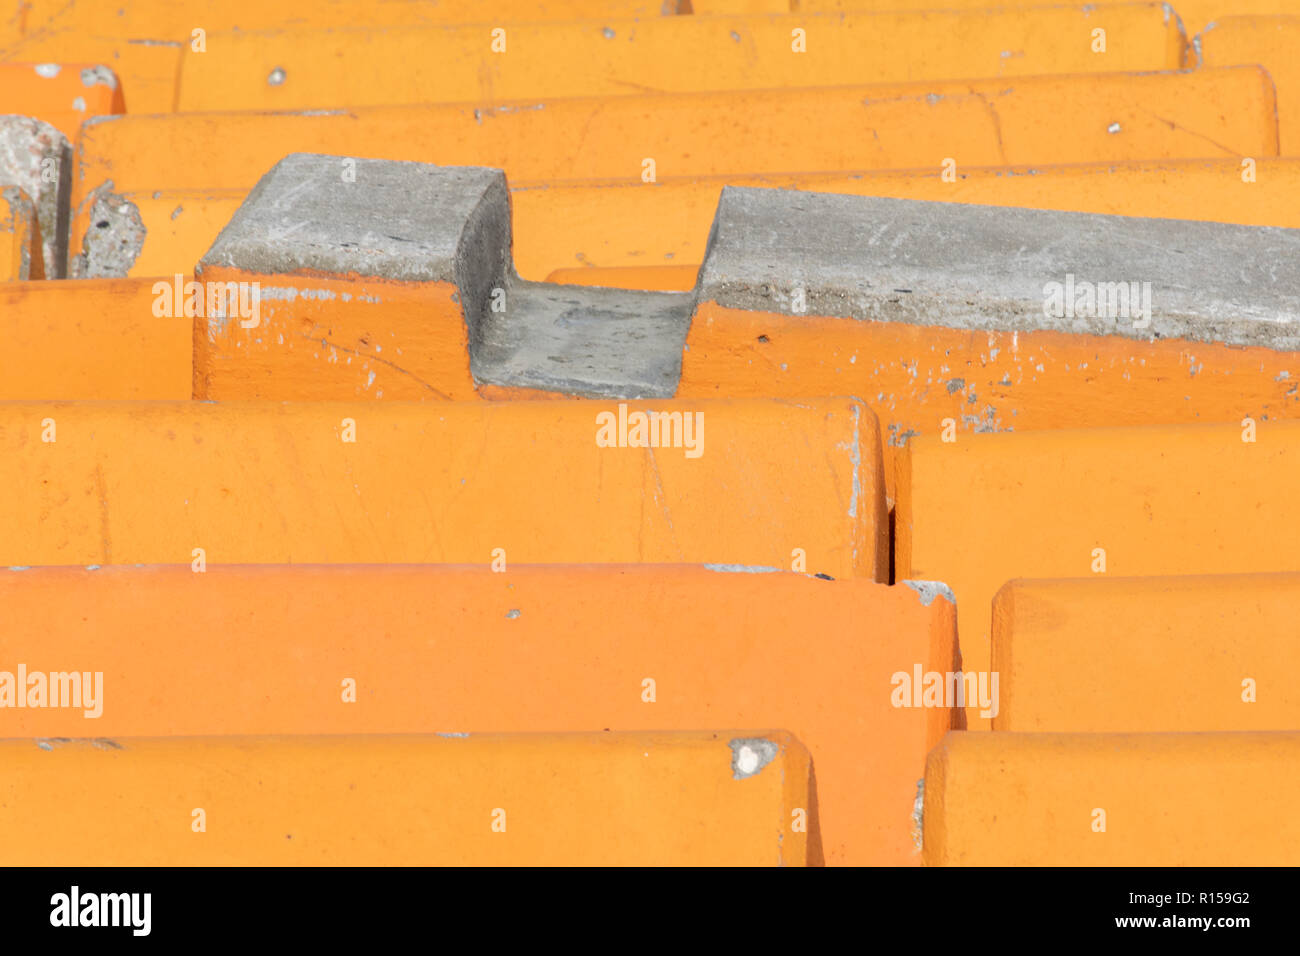 Close up detail of orange concrete road barriers used to line streets protecting pedestrians from terrorist attack using motor vehicles. - Stock Image